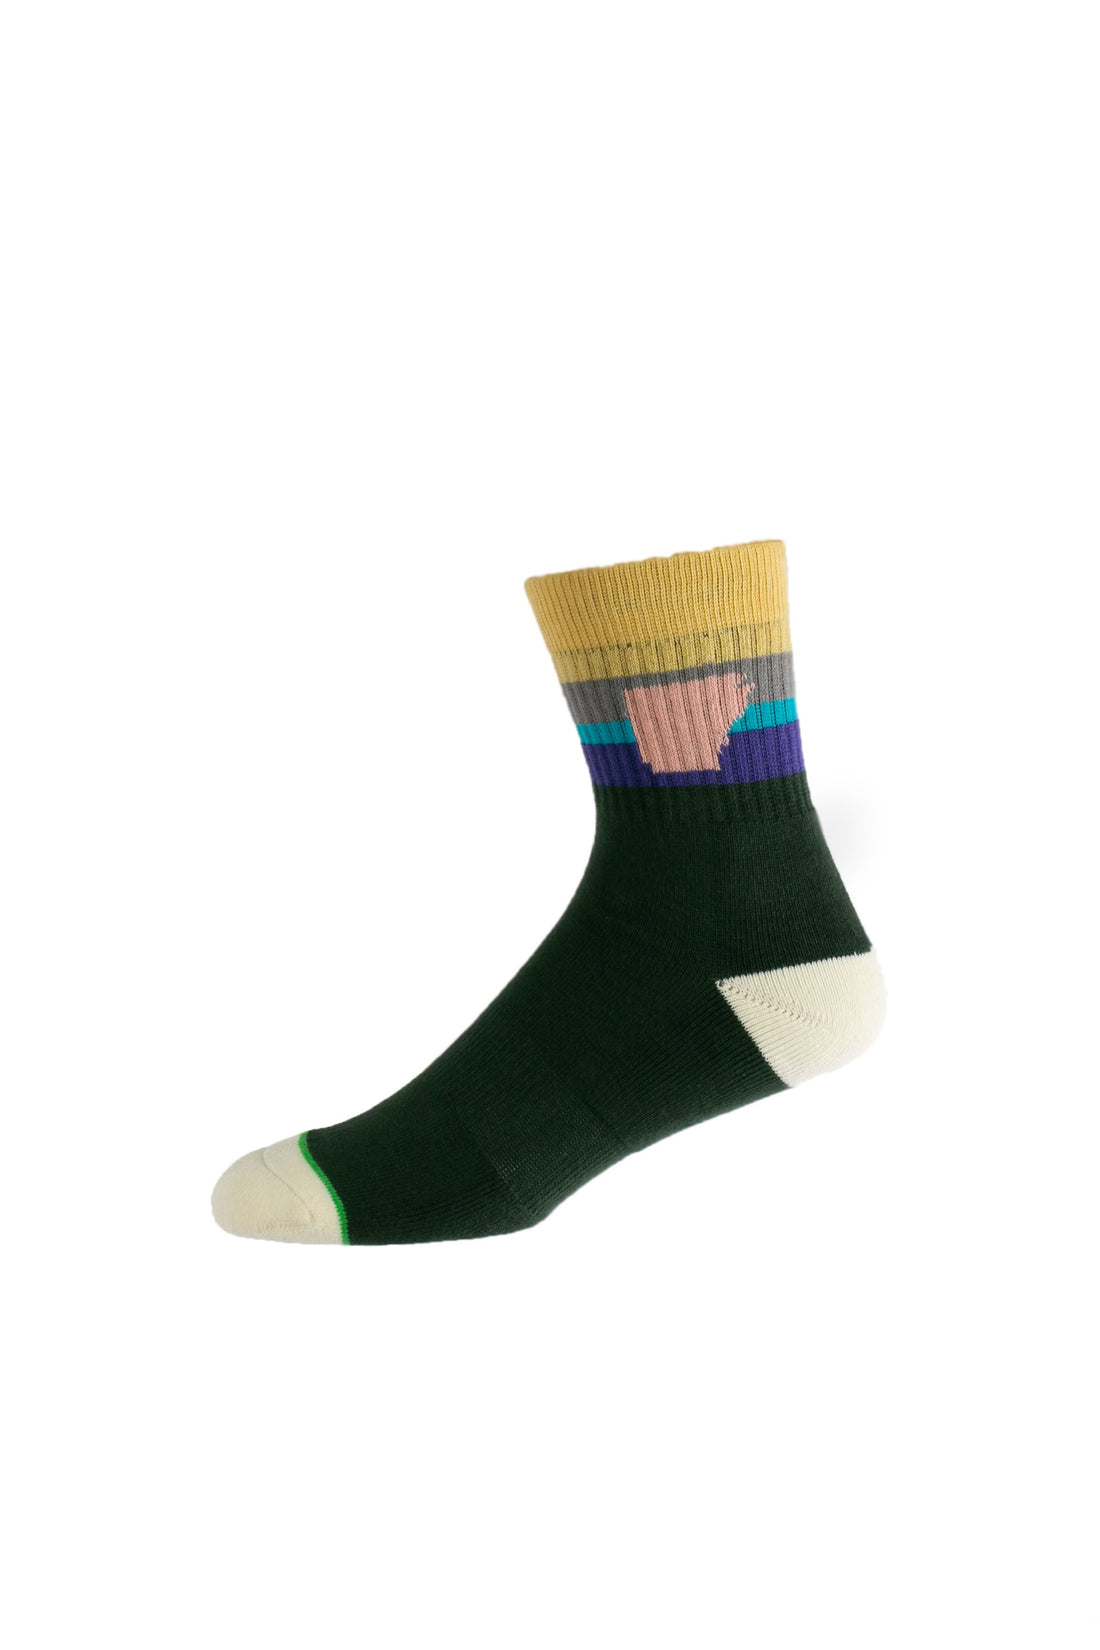 Arkansocks Tailgater Mid (Gorge Green/Lemon-Light Blue)